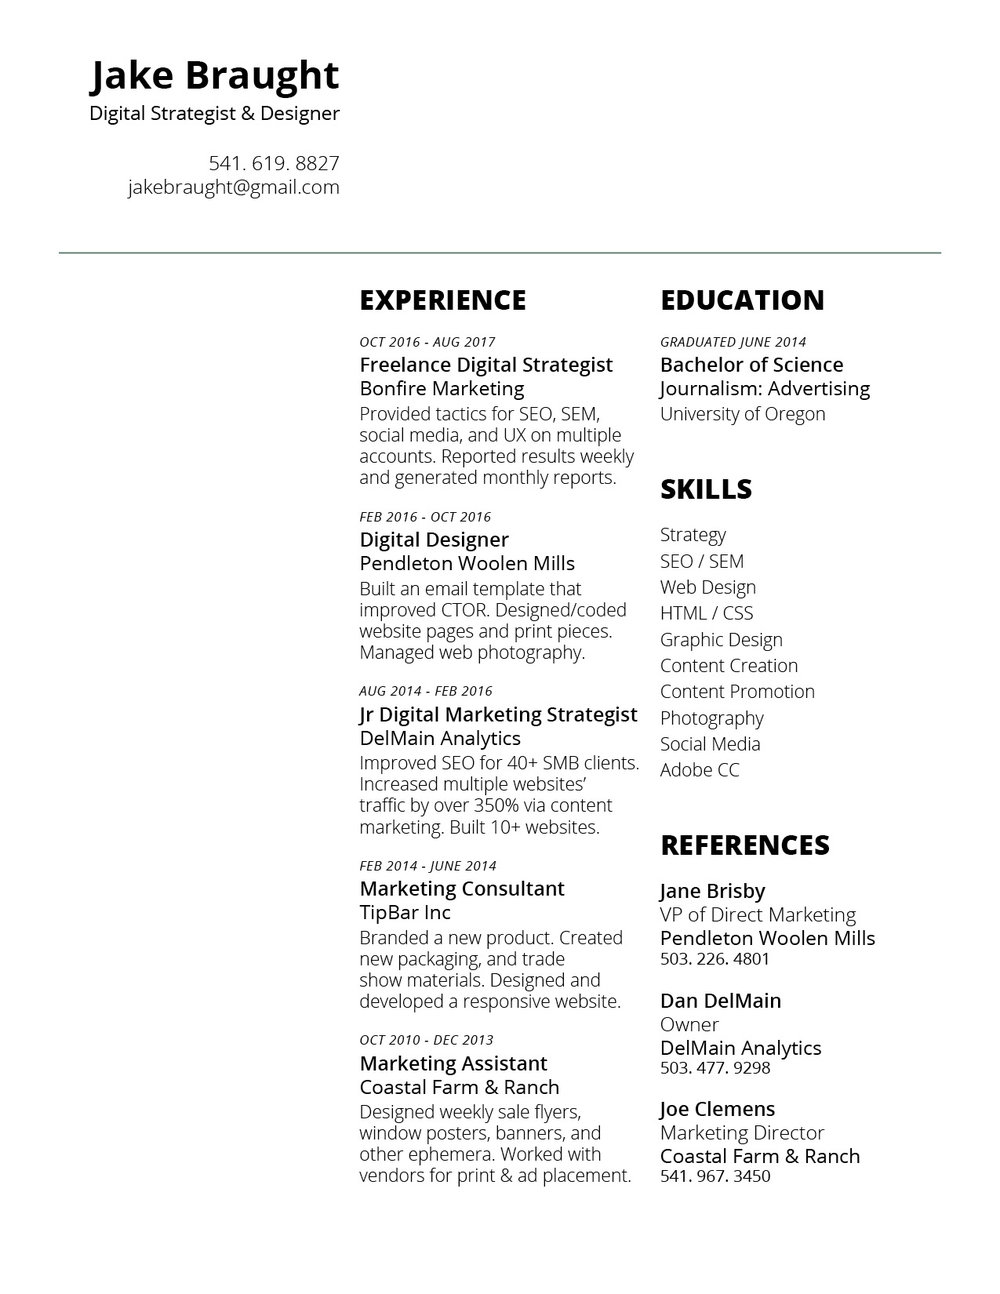 jake braught resumejpg - Digital Strategist Resume